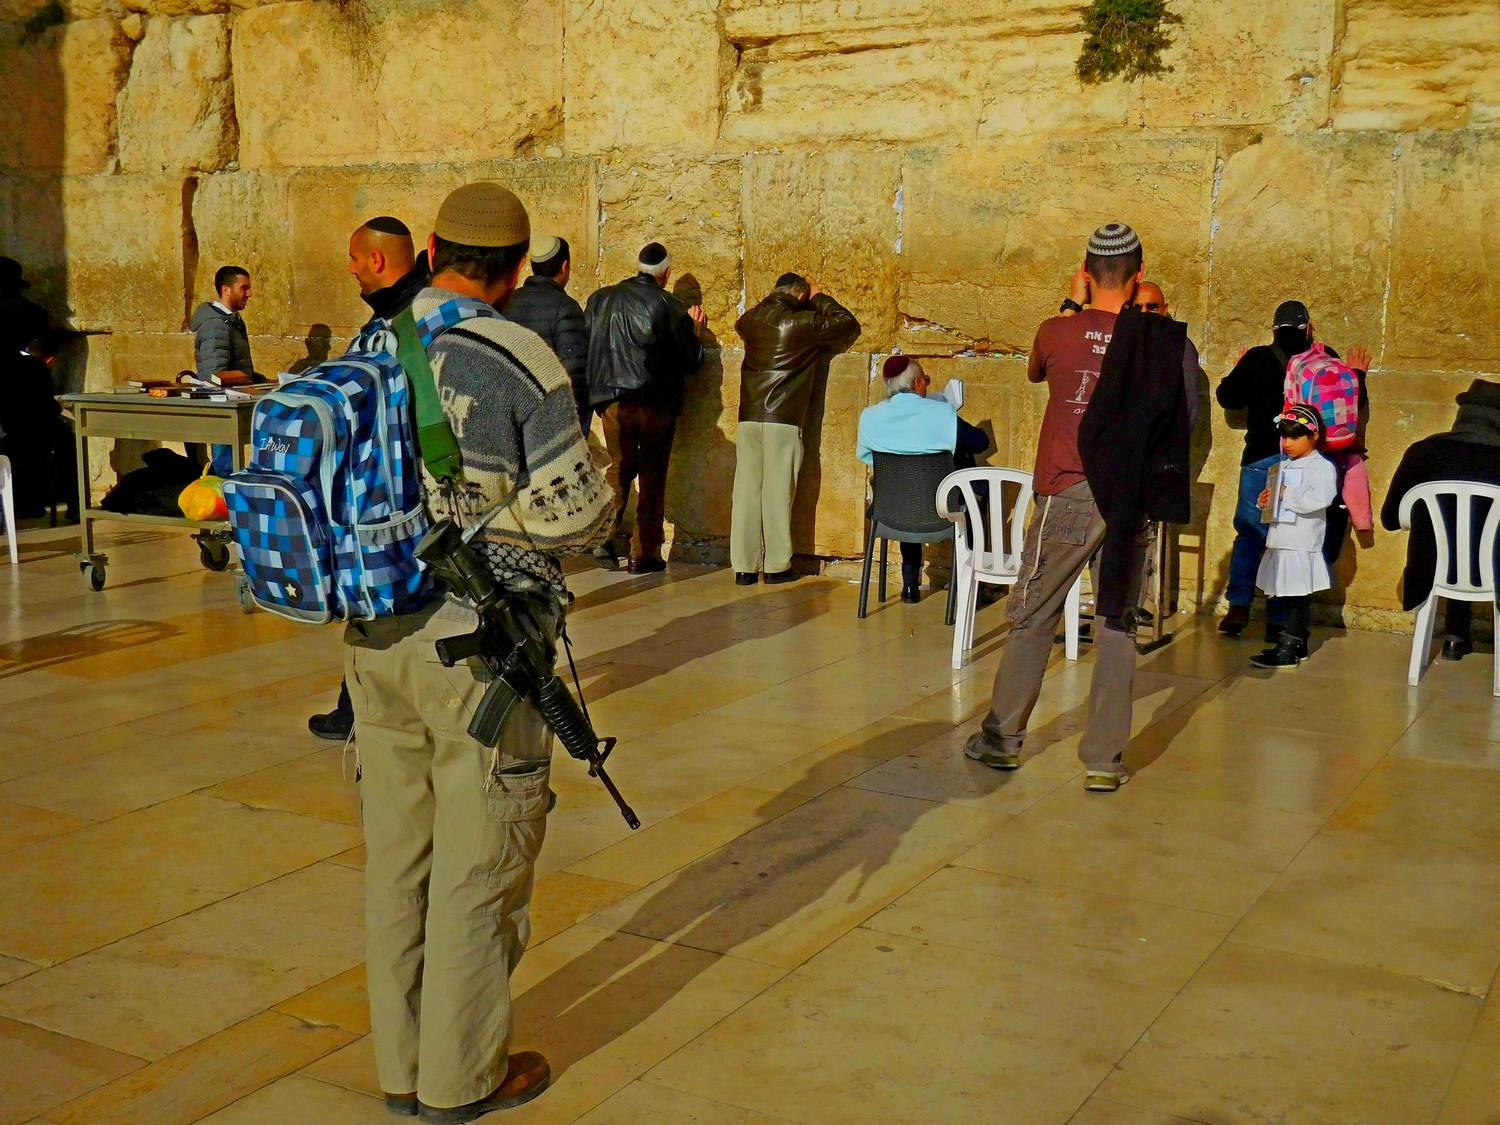 History of Jerusalem, soldier, wailing wall, old city, m-16